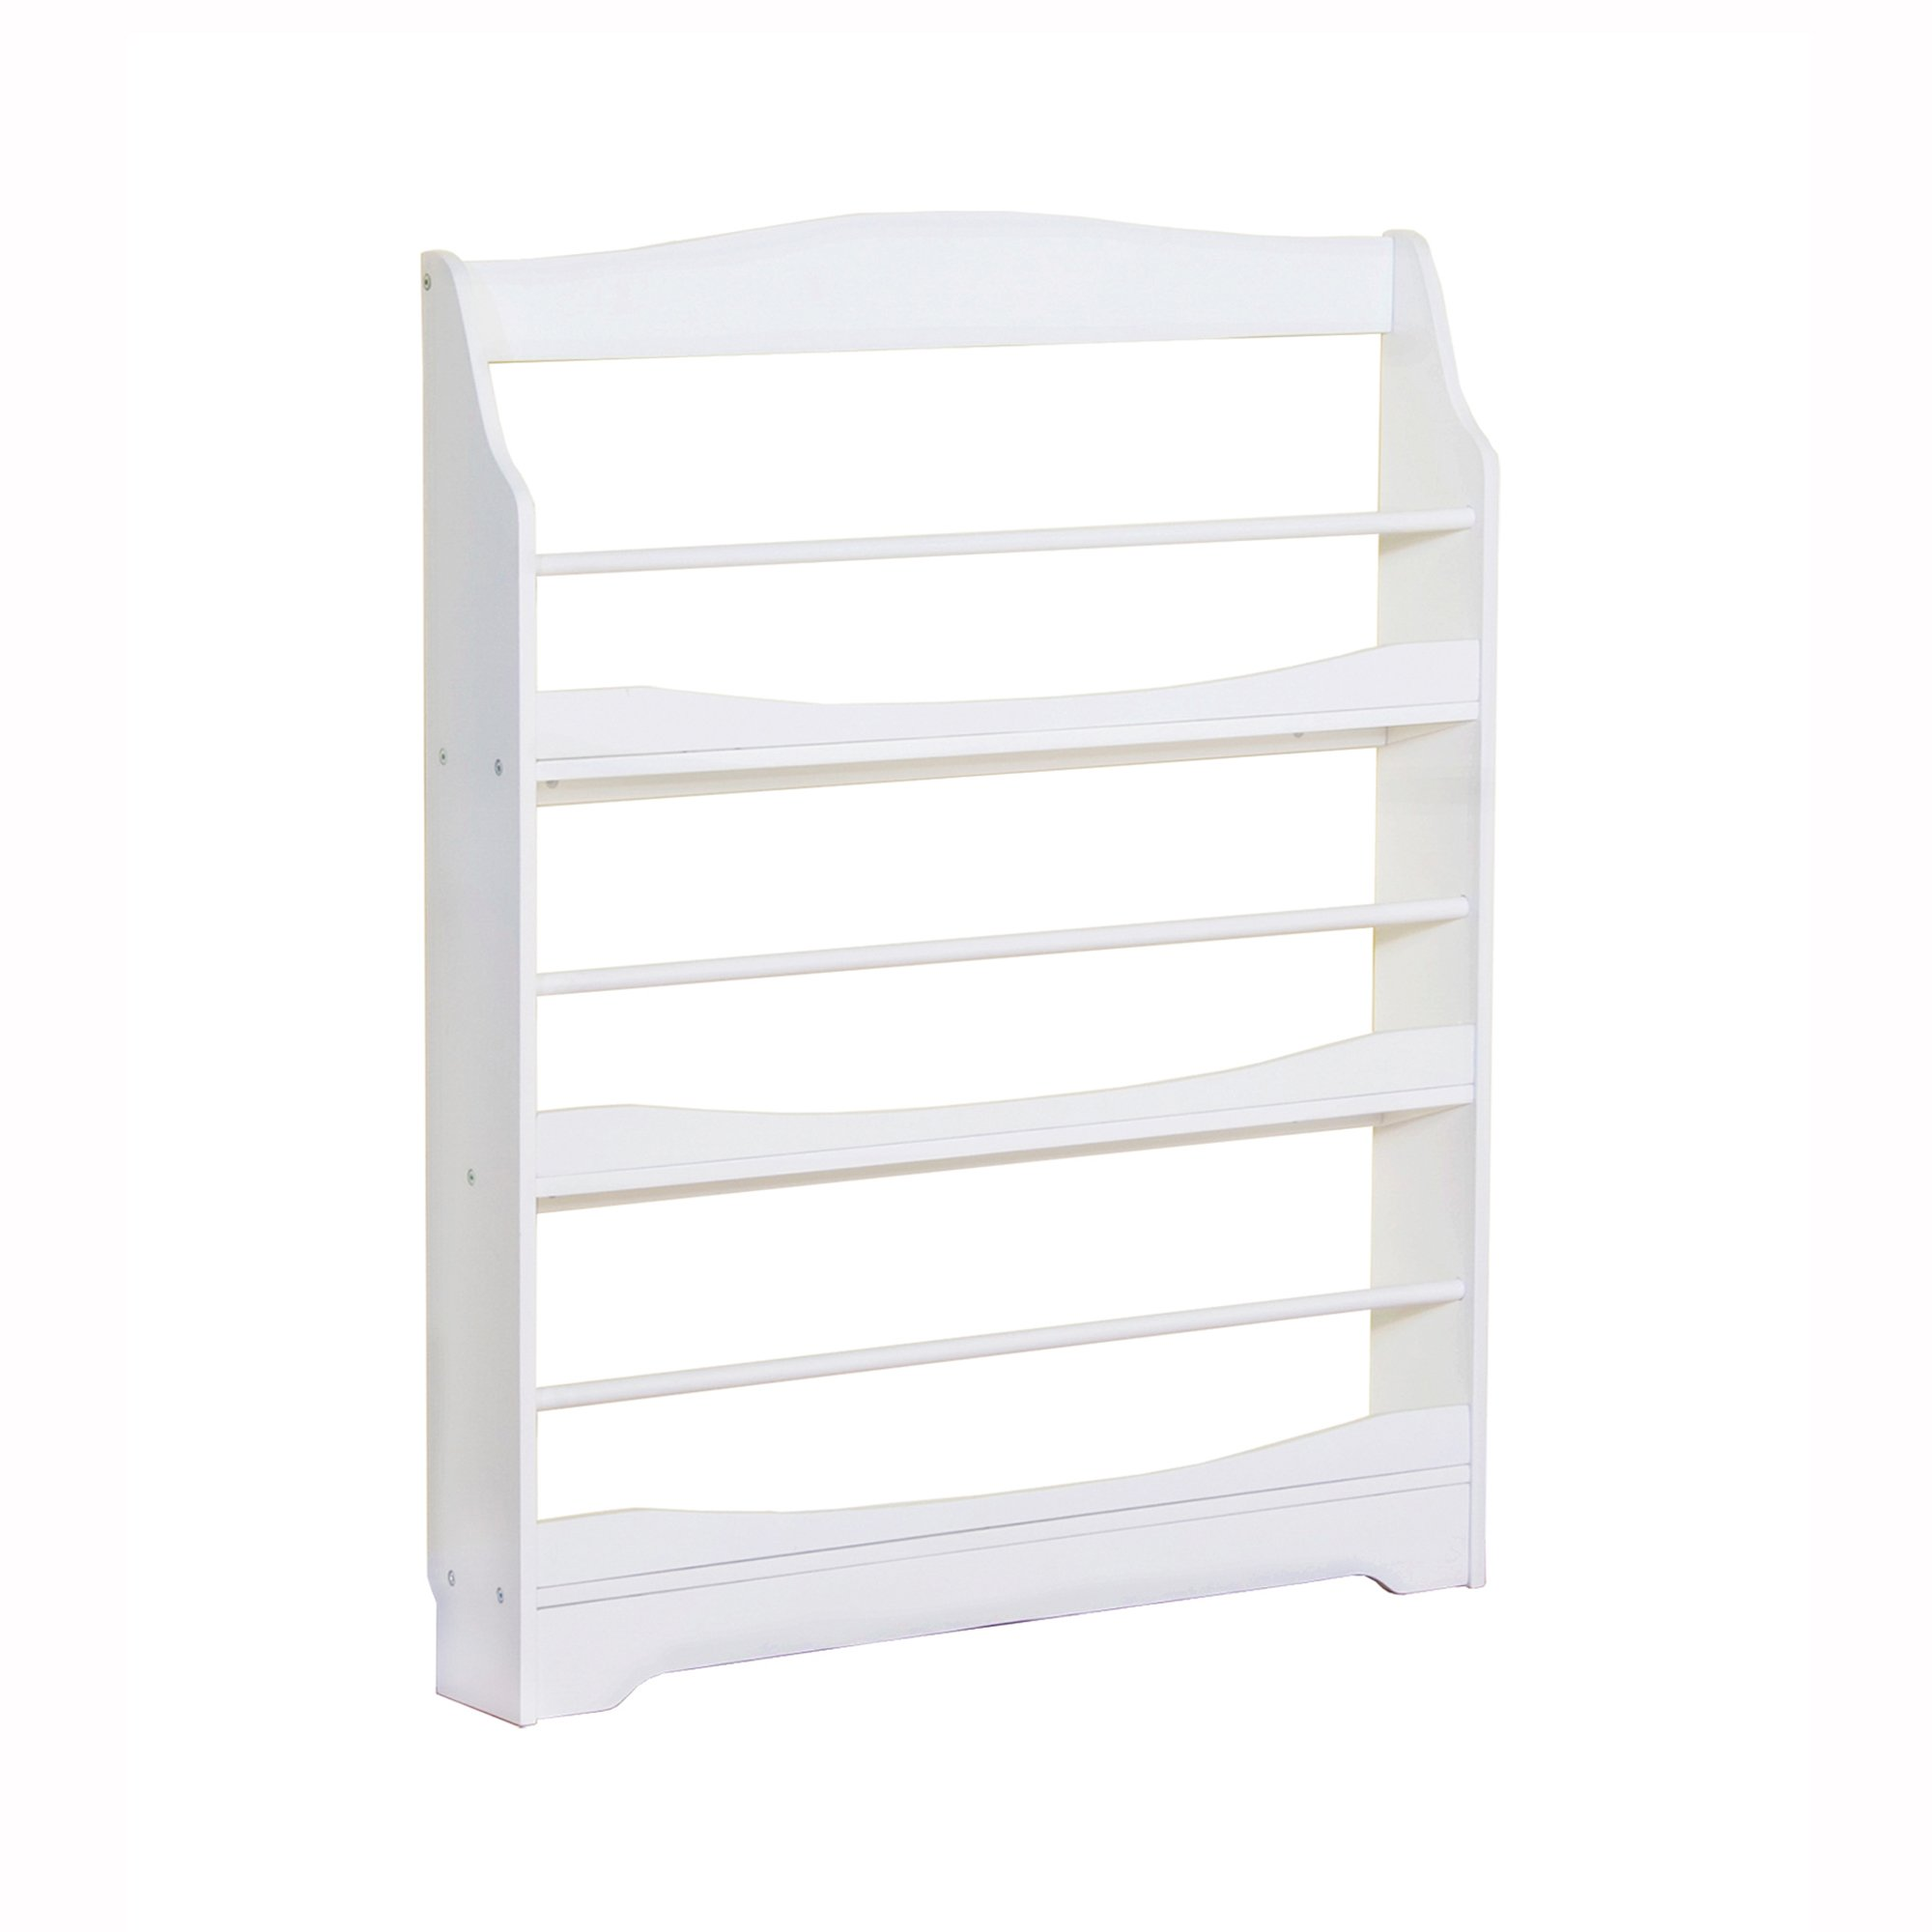 Guidecraft Expressions White Bookrack - Storage Bookshelf Kids School Furniture